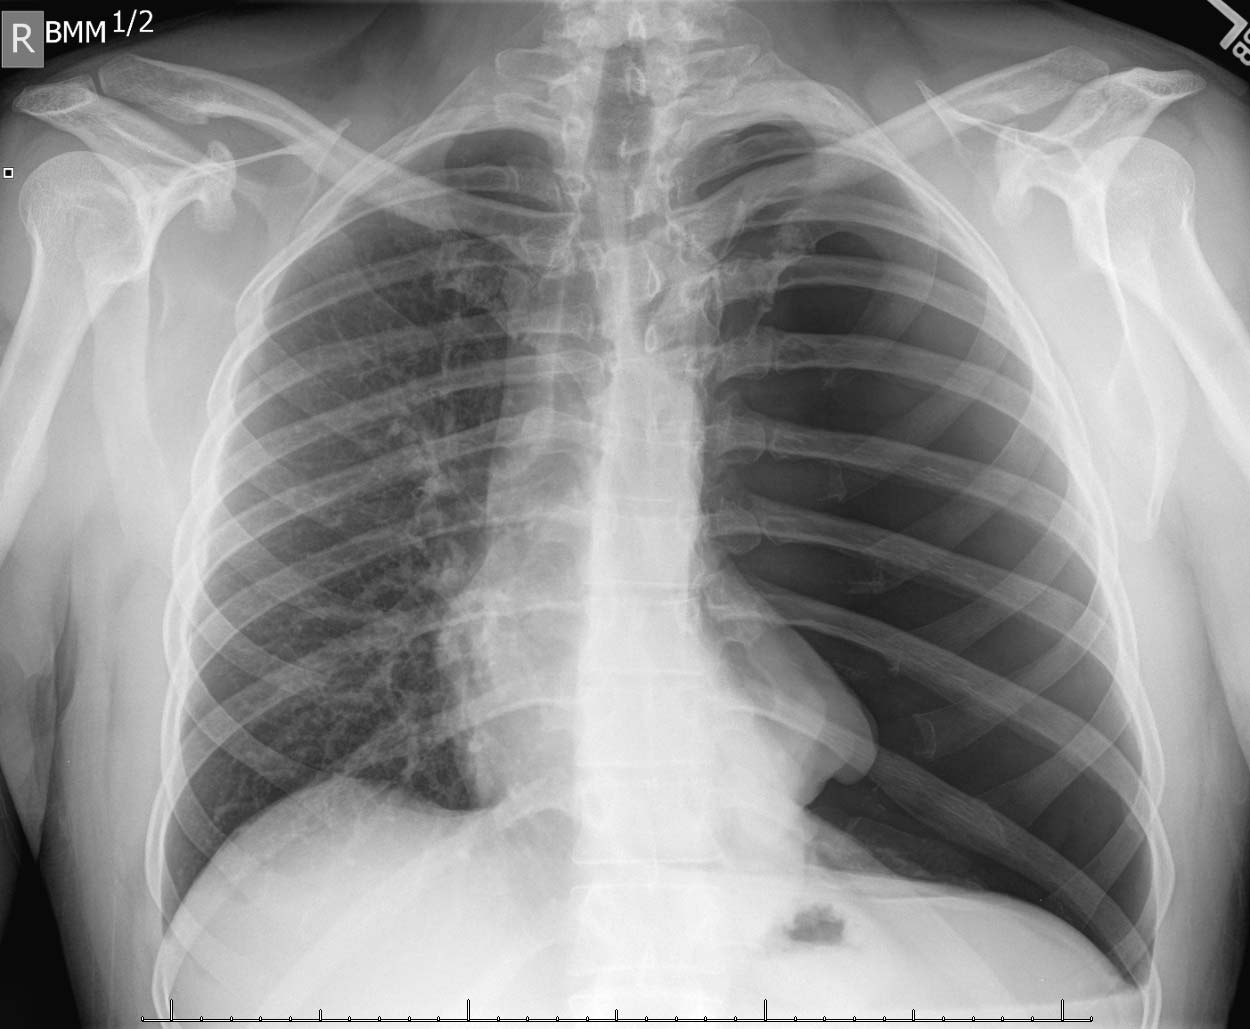 Reexpansion pulmonary edema following Chest Tube placement